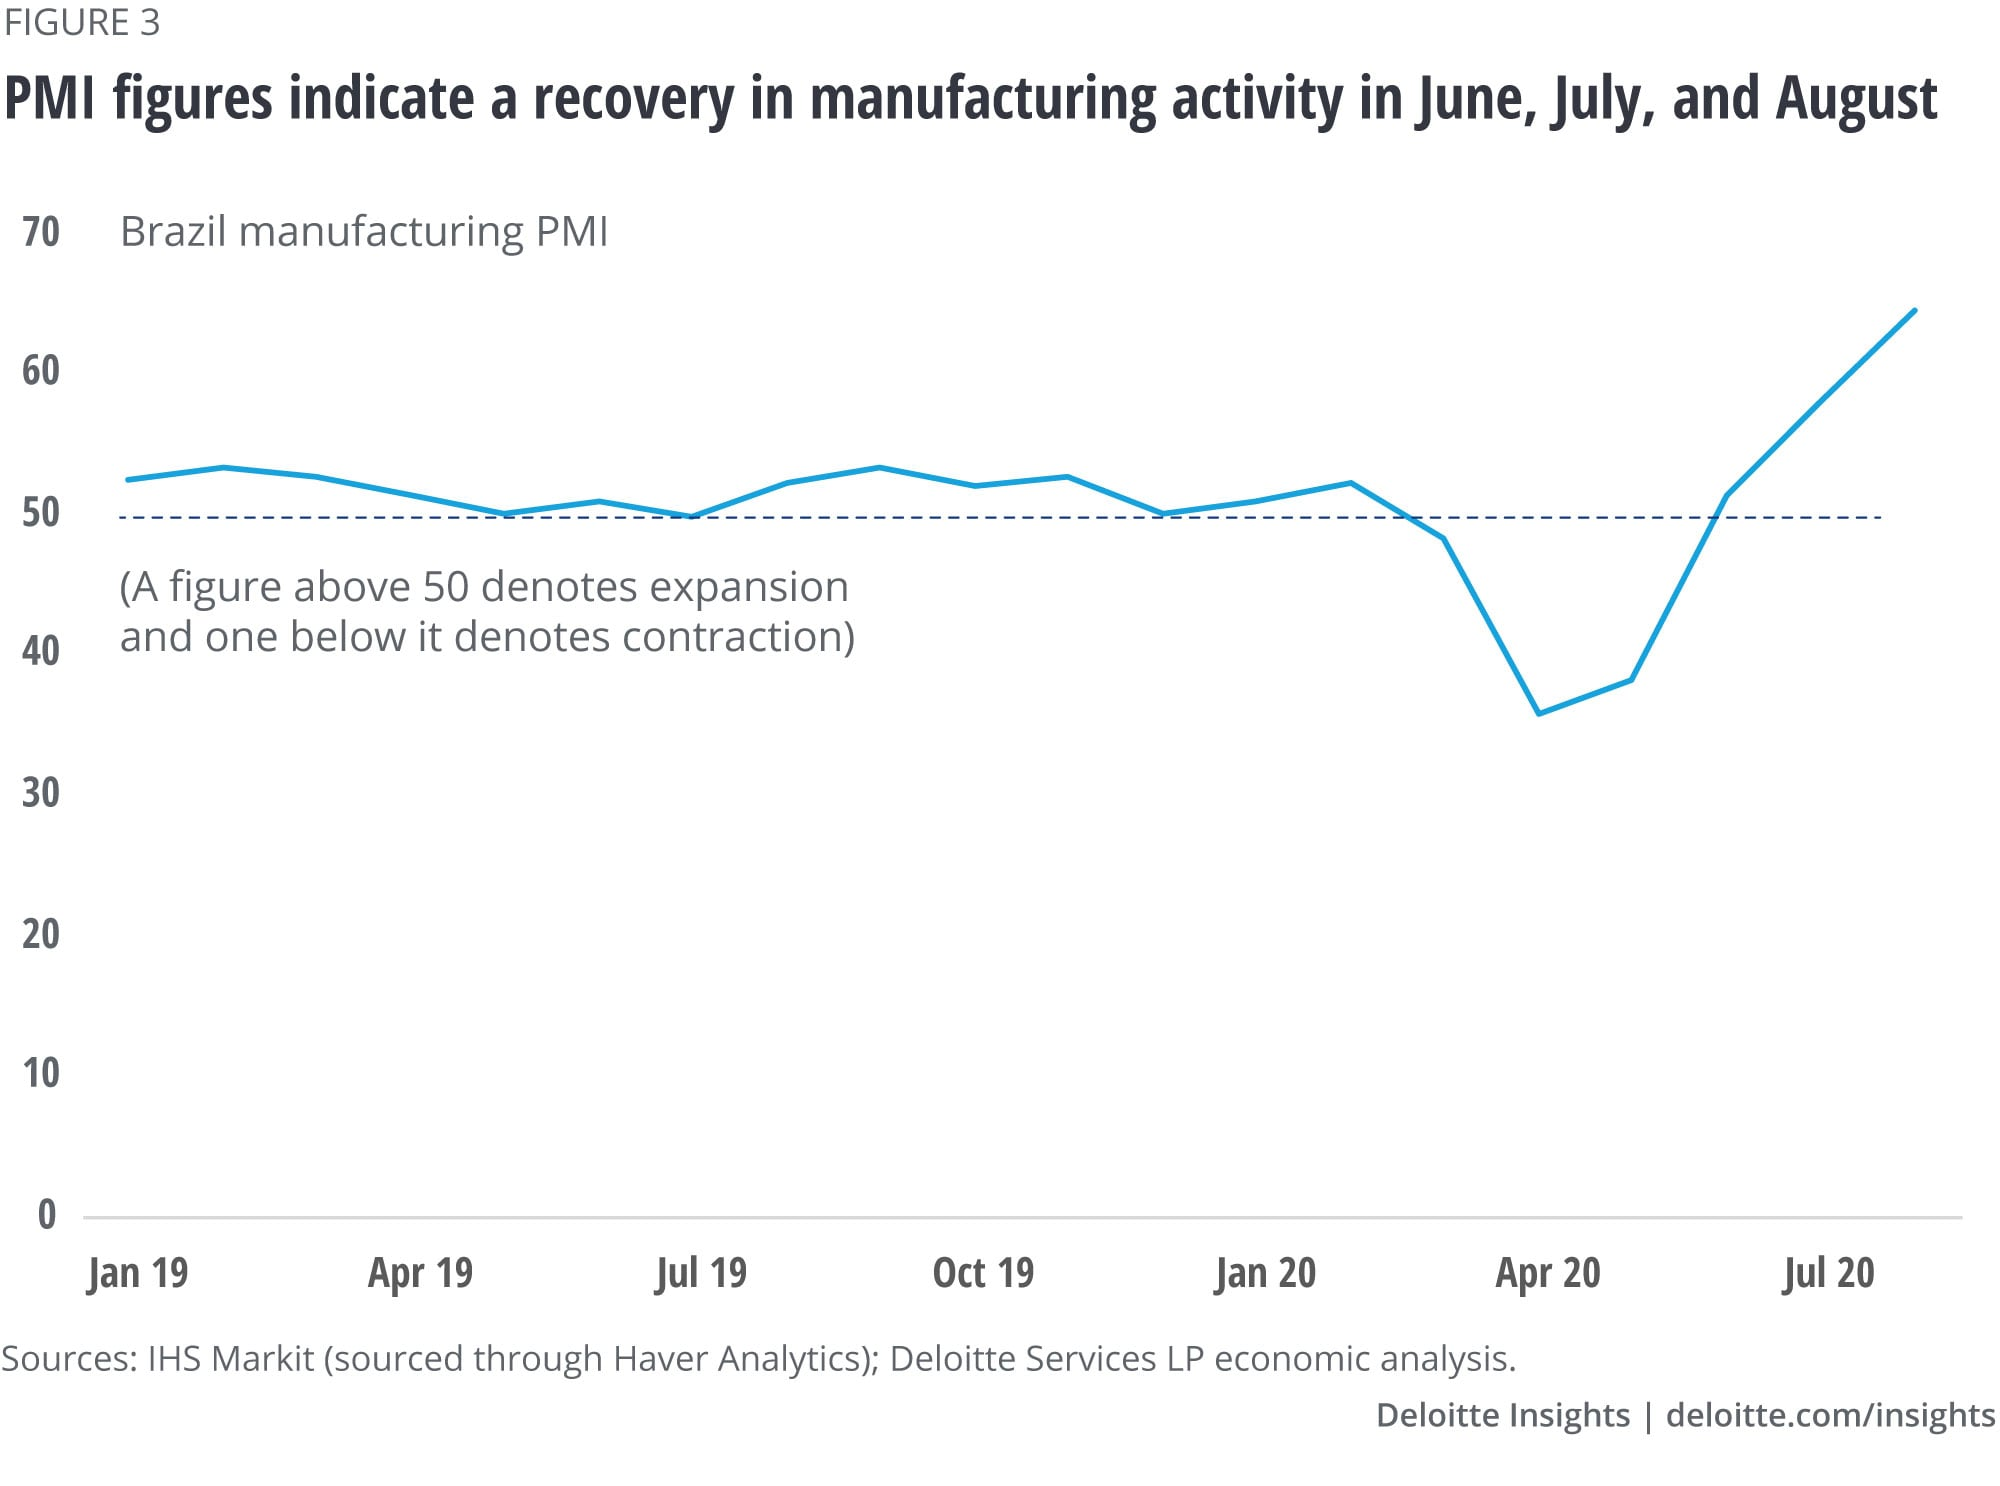 PMI figures indicate a recovery in manufacturing activity in June, July, and August